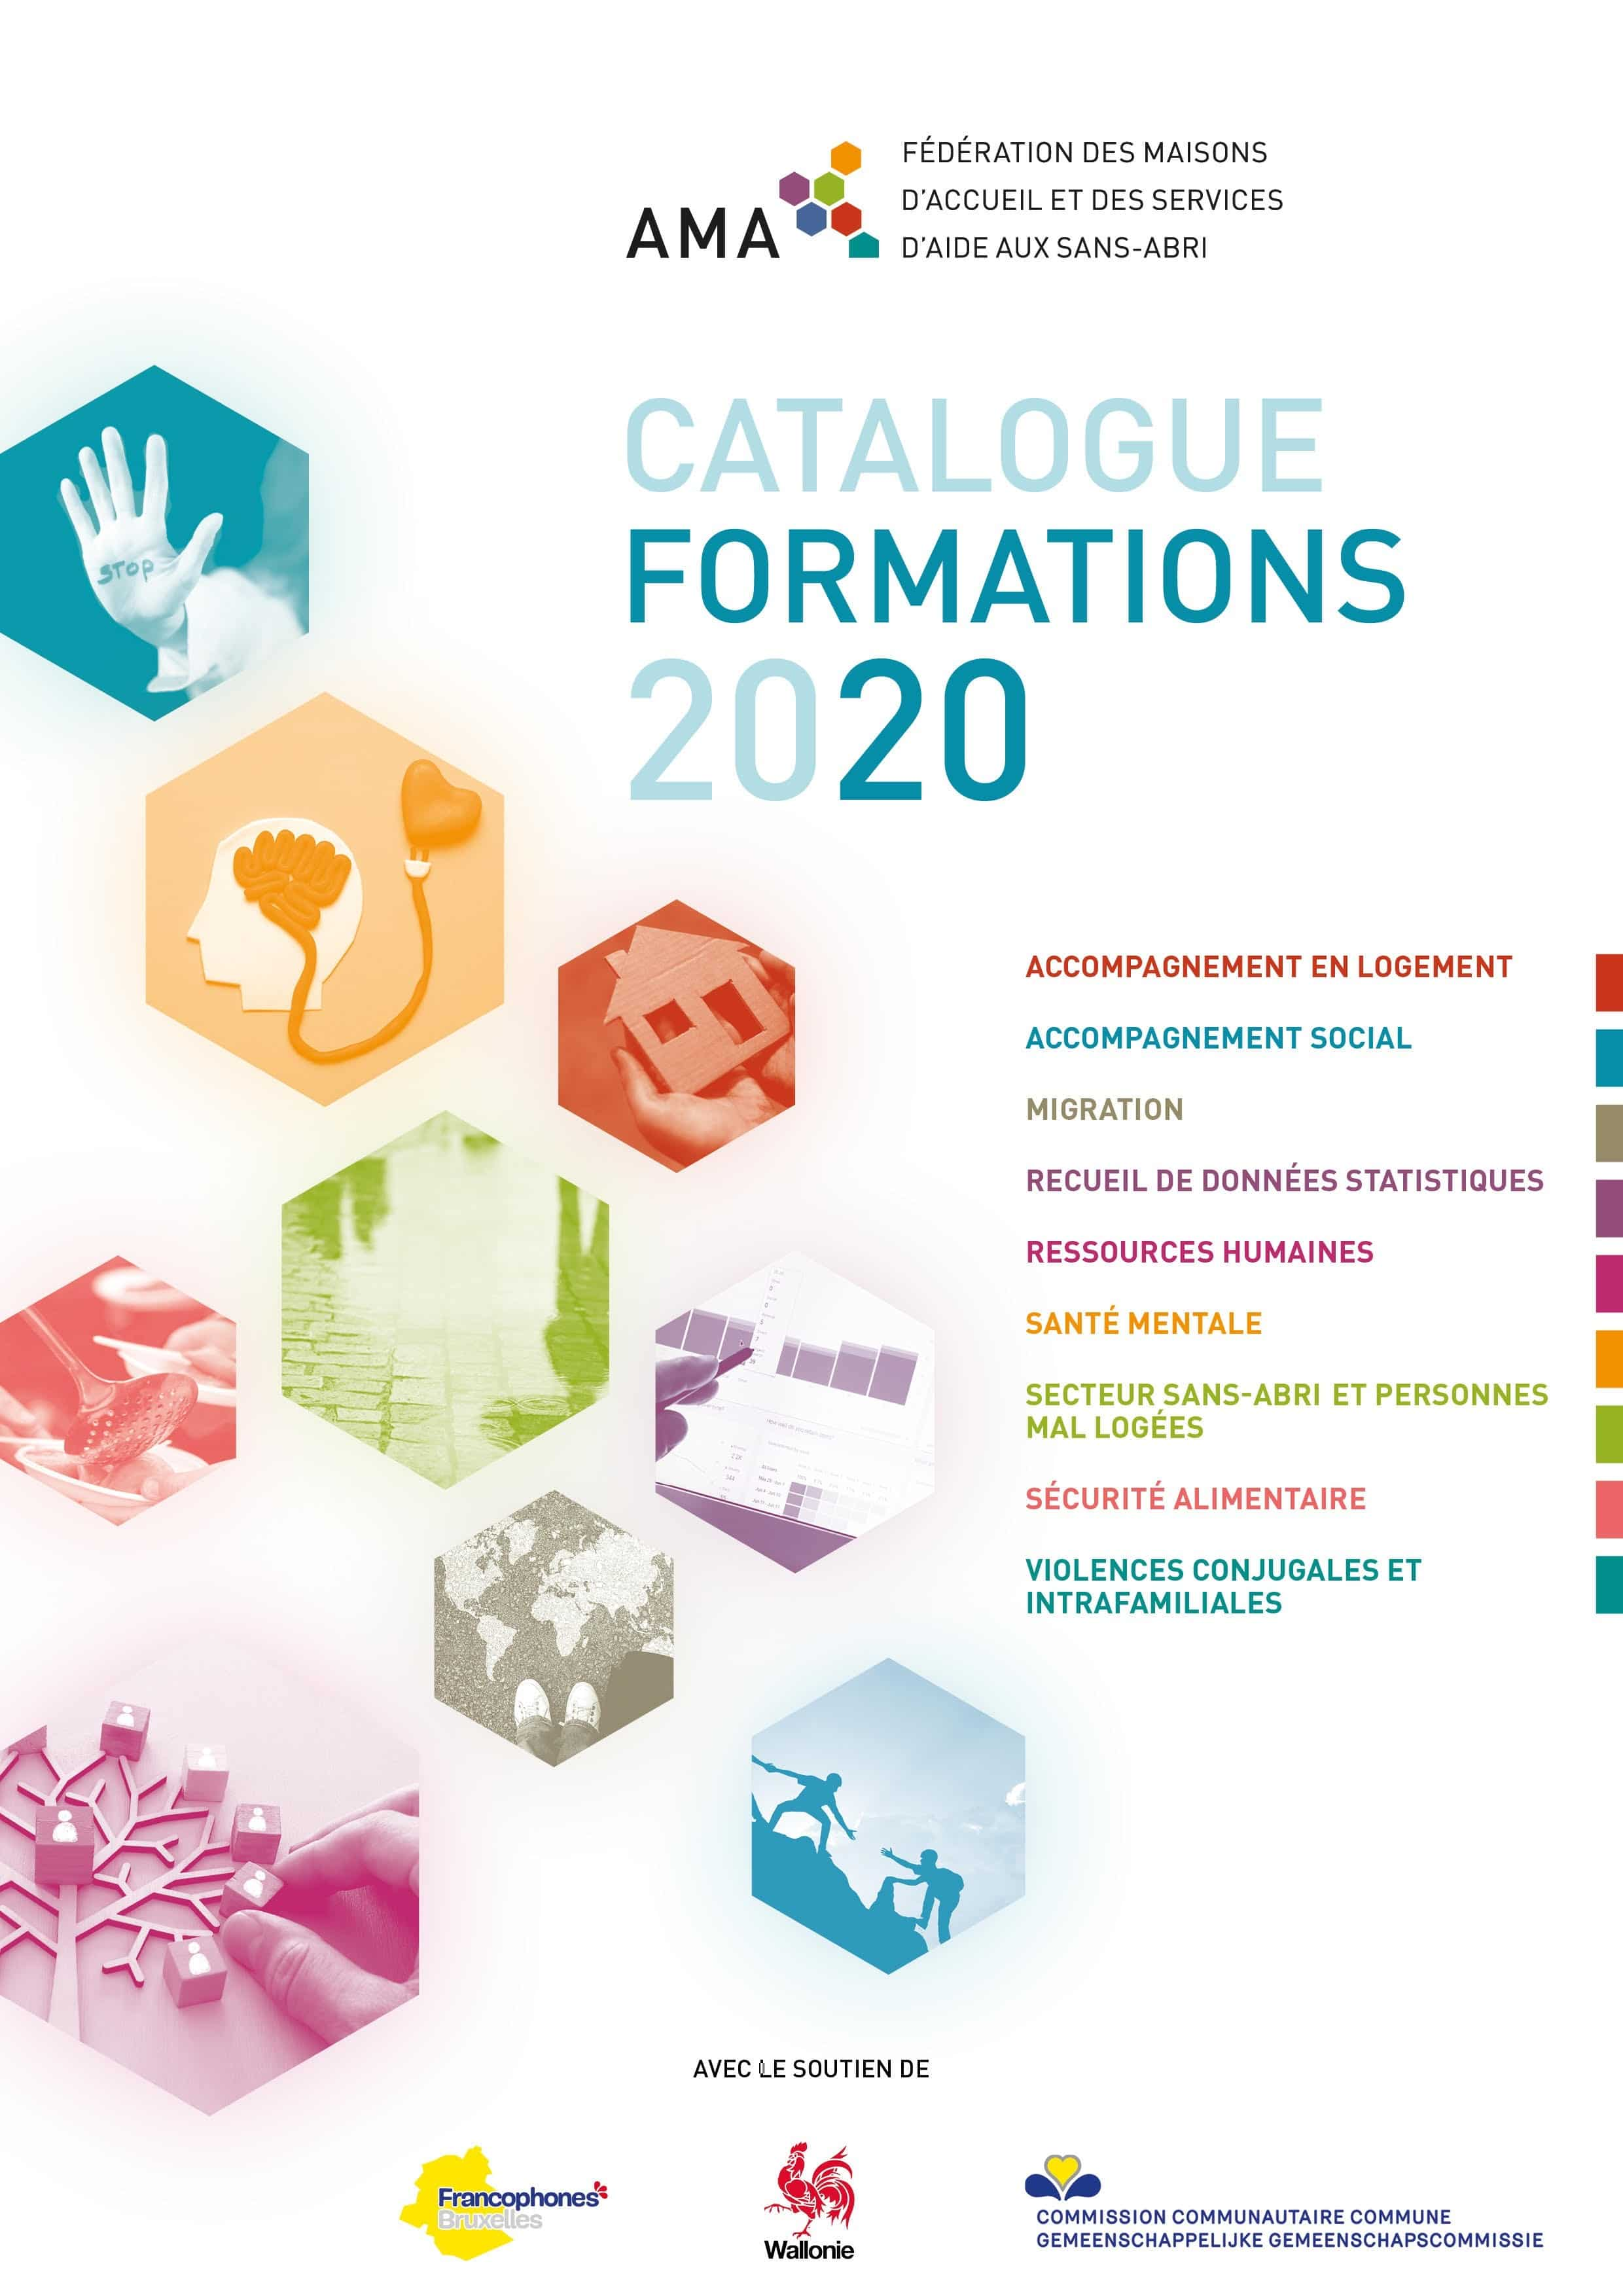 Catalogue De Formations De L'AMA (Version Juillet 2020)